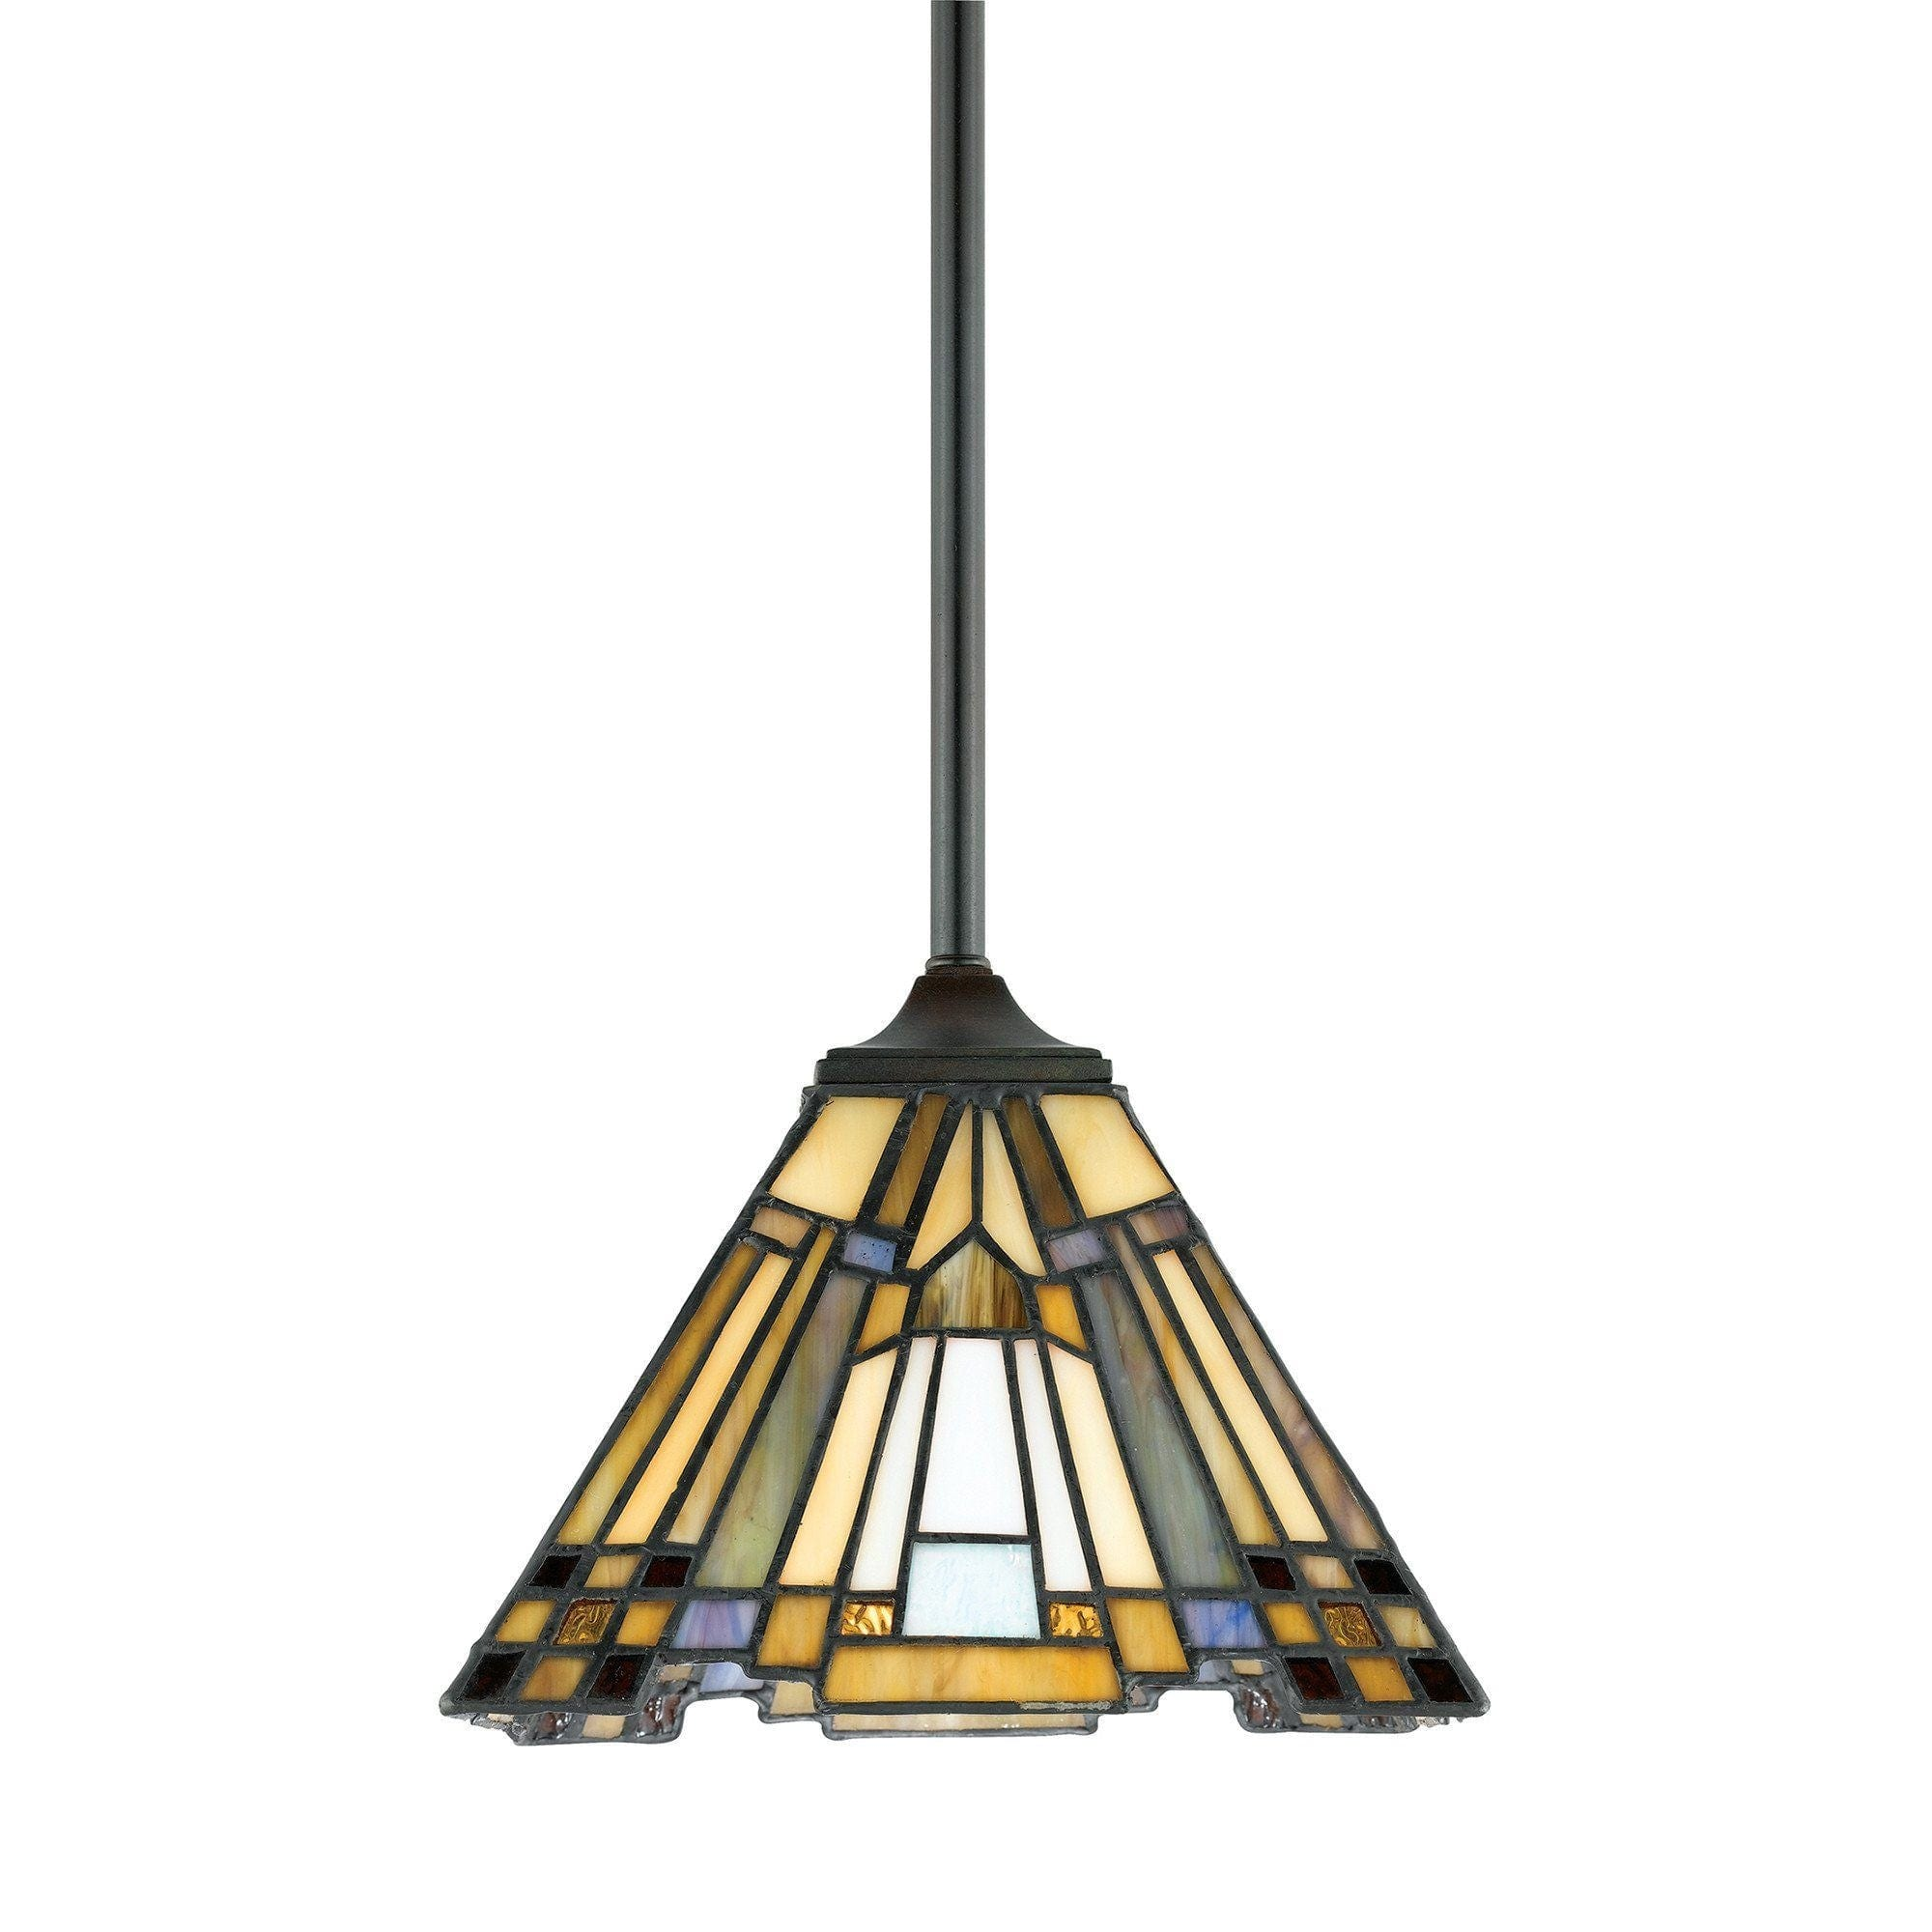 Quoizel inglenook small tiffany ceiling light aloadofball Image collections